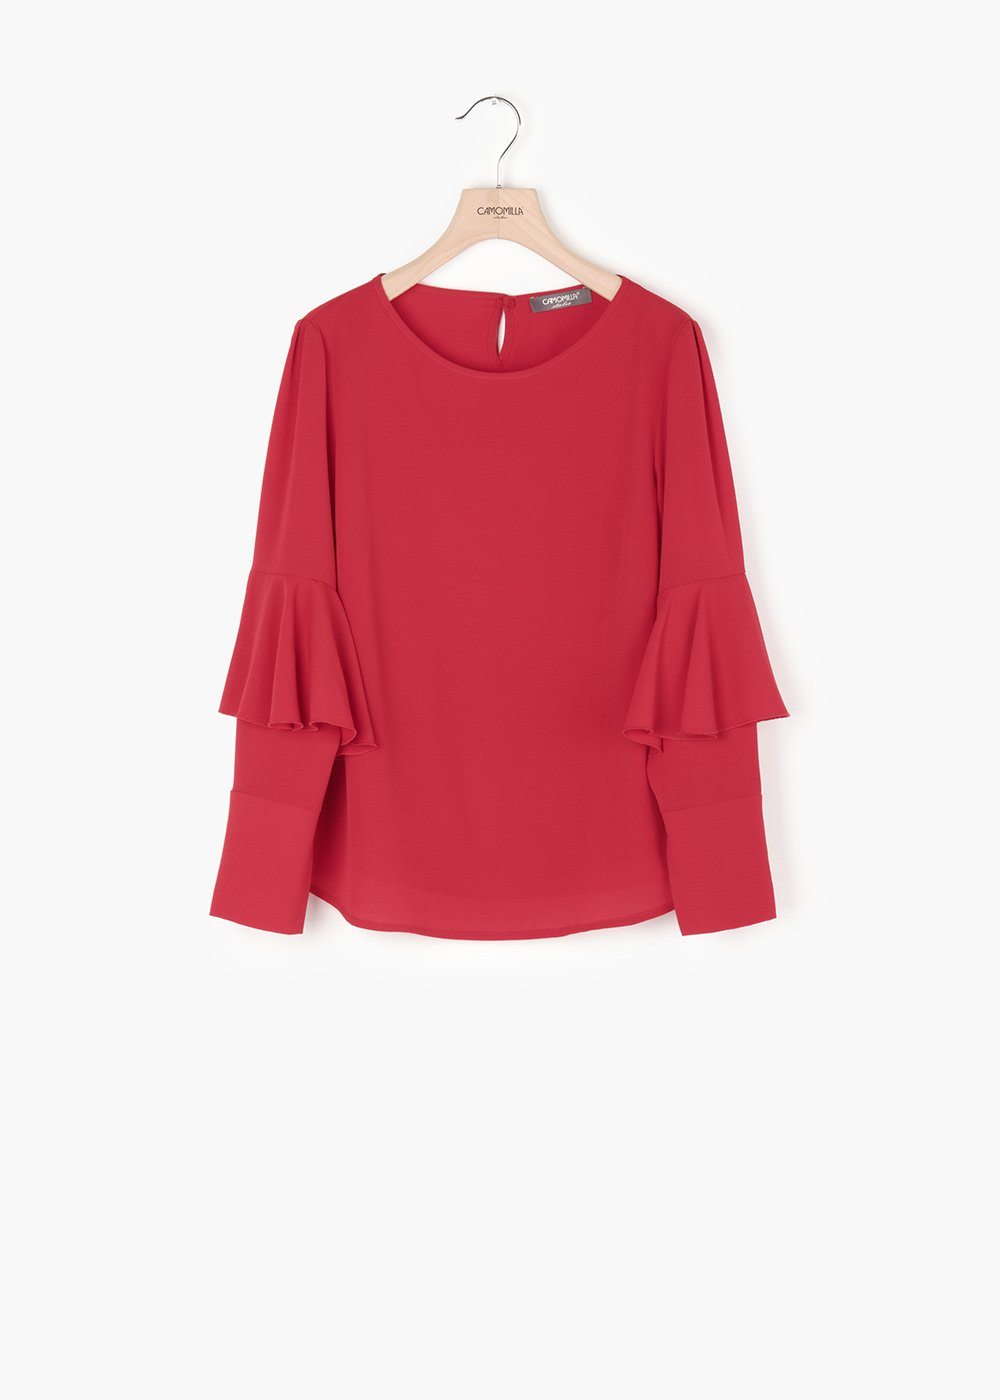 Clara shirt with long sleeves - Red - Woman